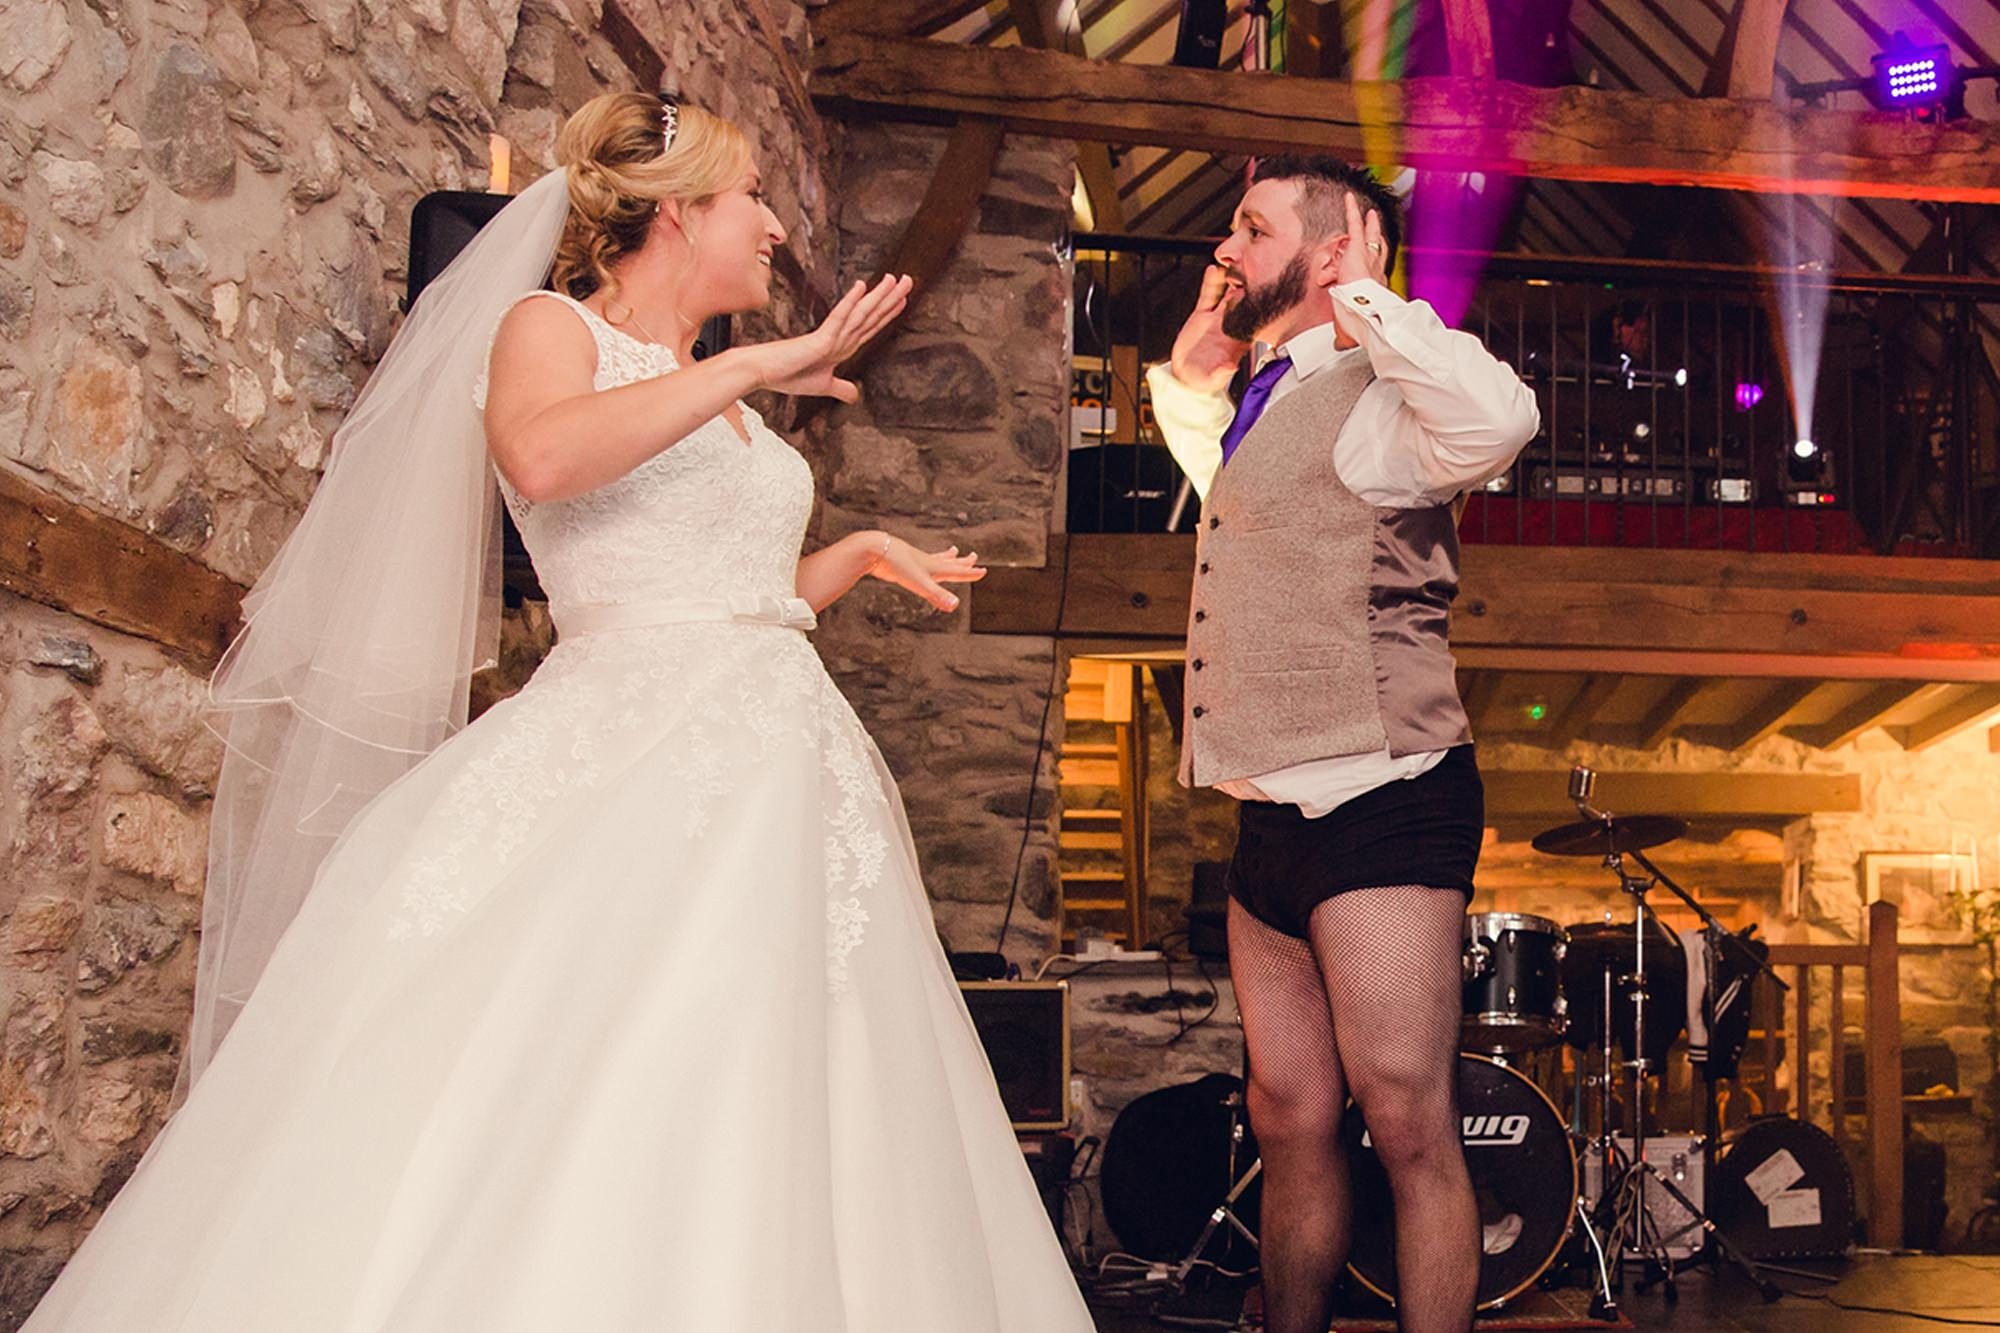 A fun wedding - bride and groom dance to the timewarp in fishnets